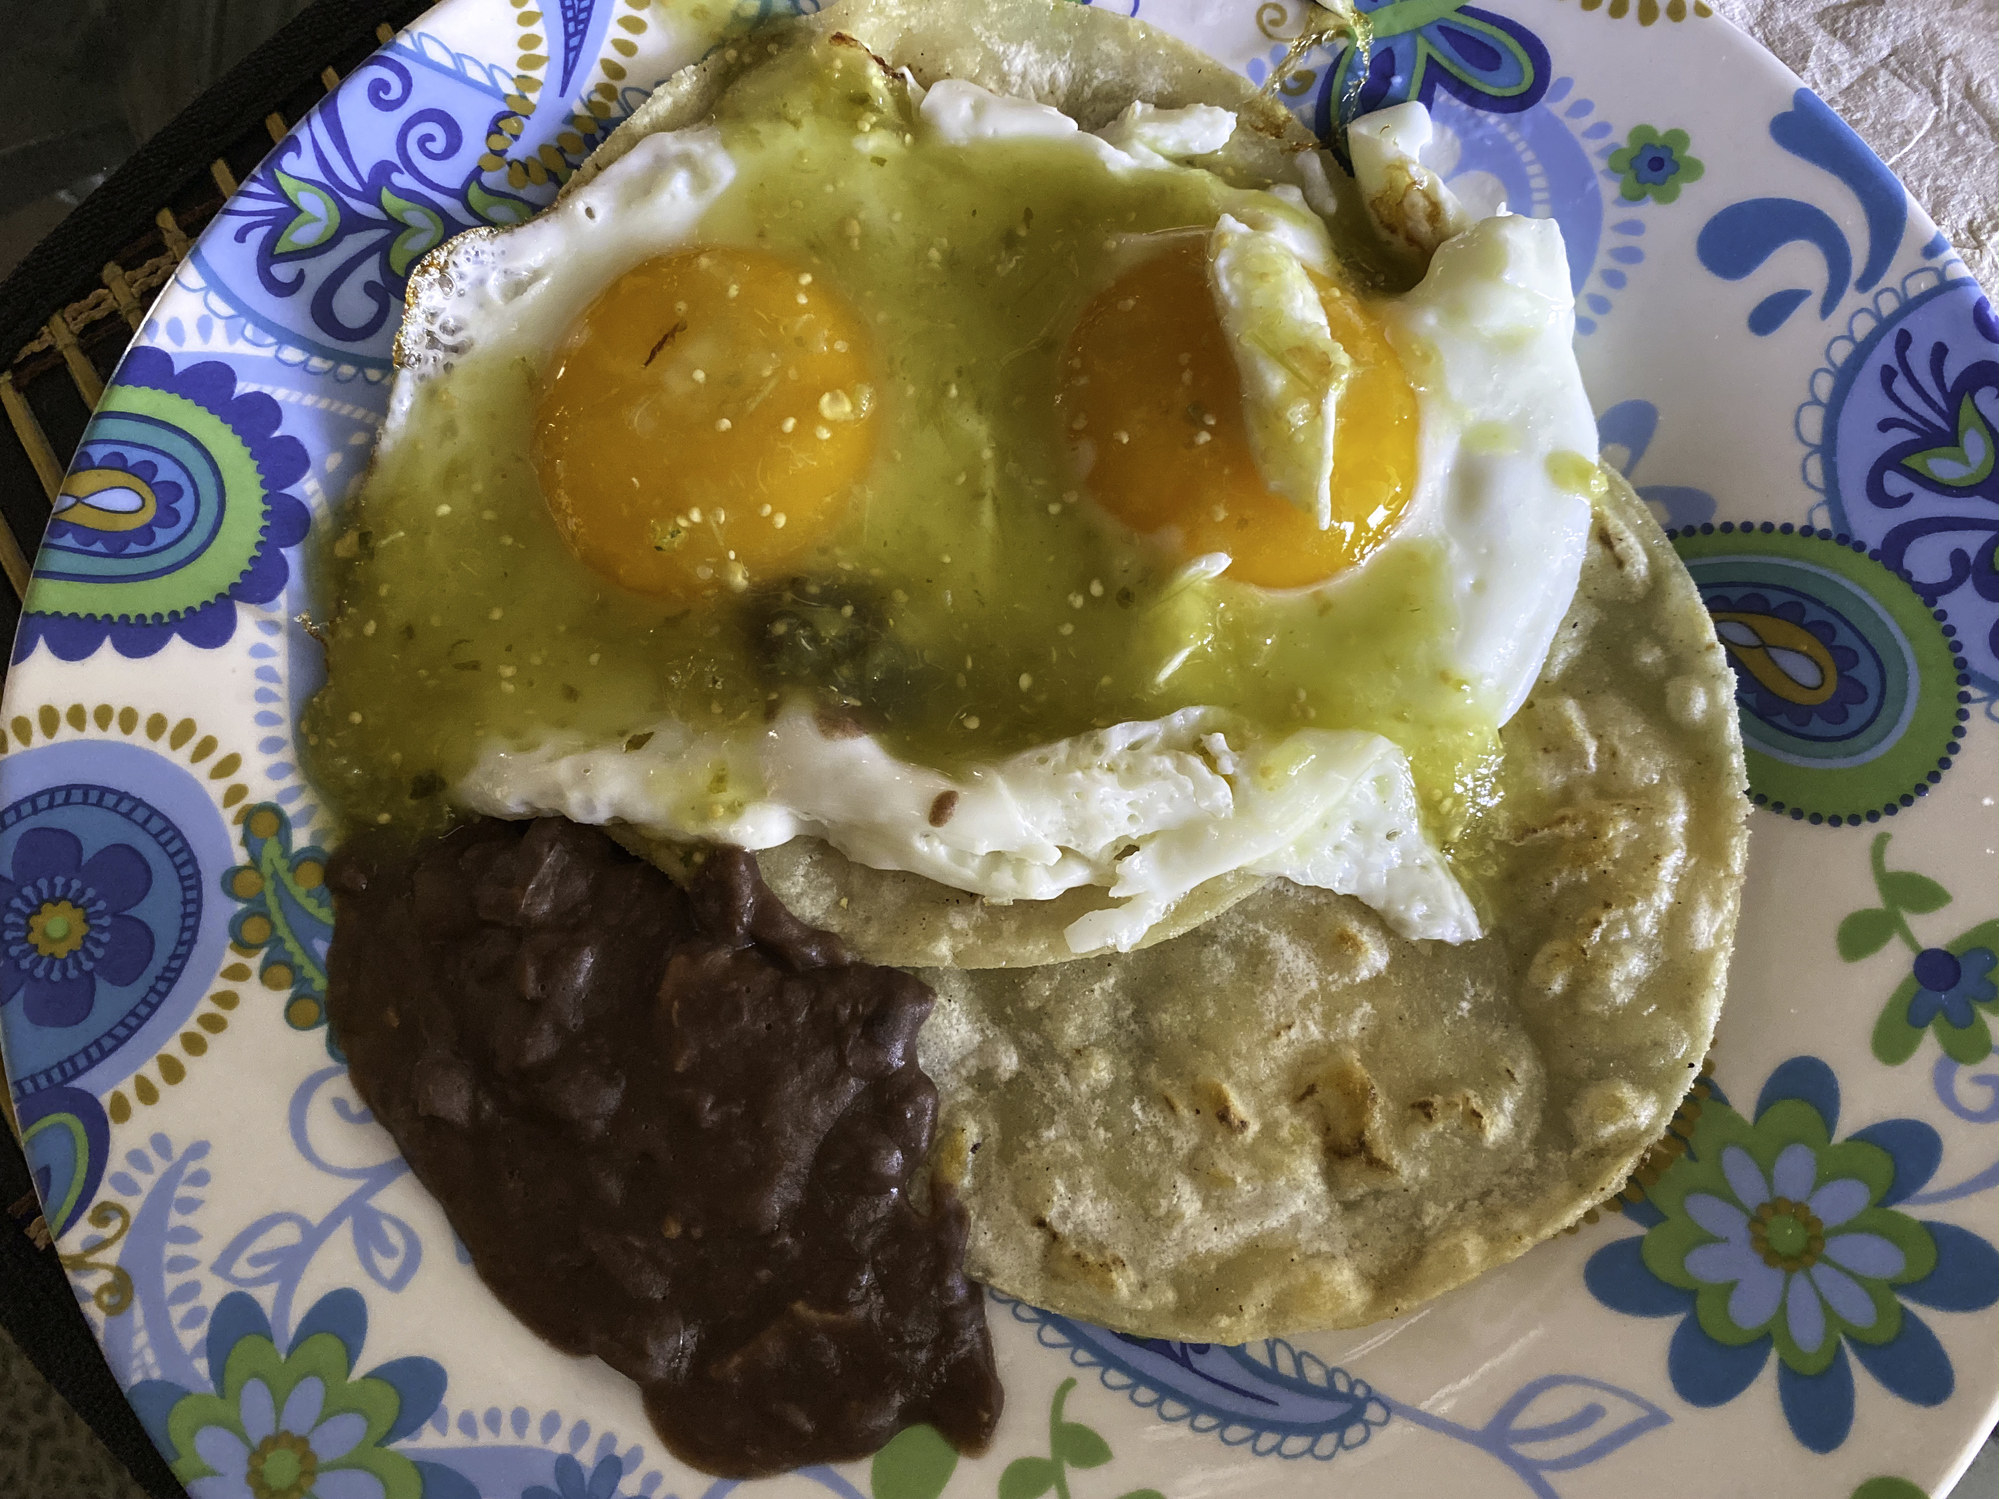 Sunny-side up eggs on top of tortillas and beans.